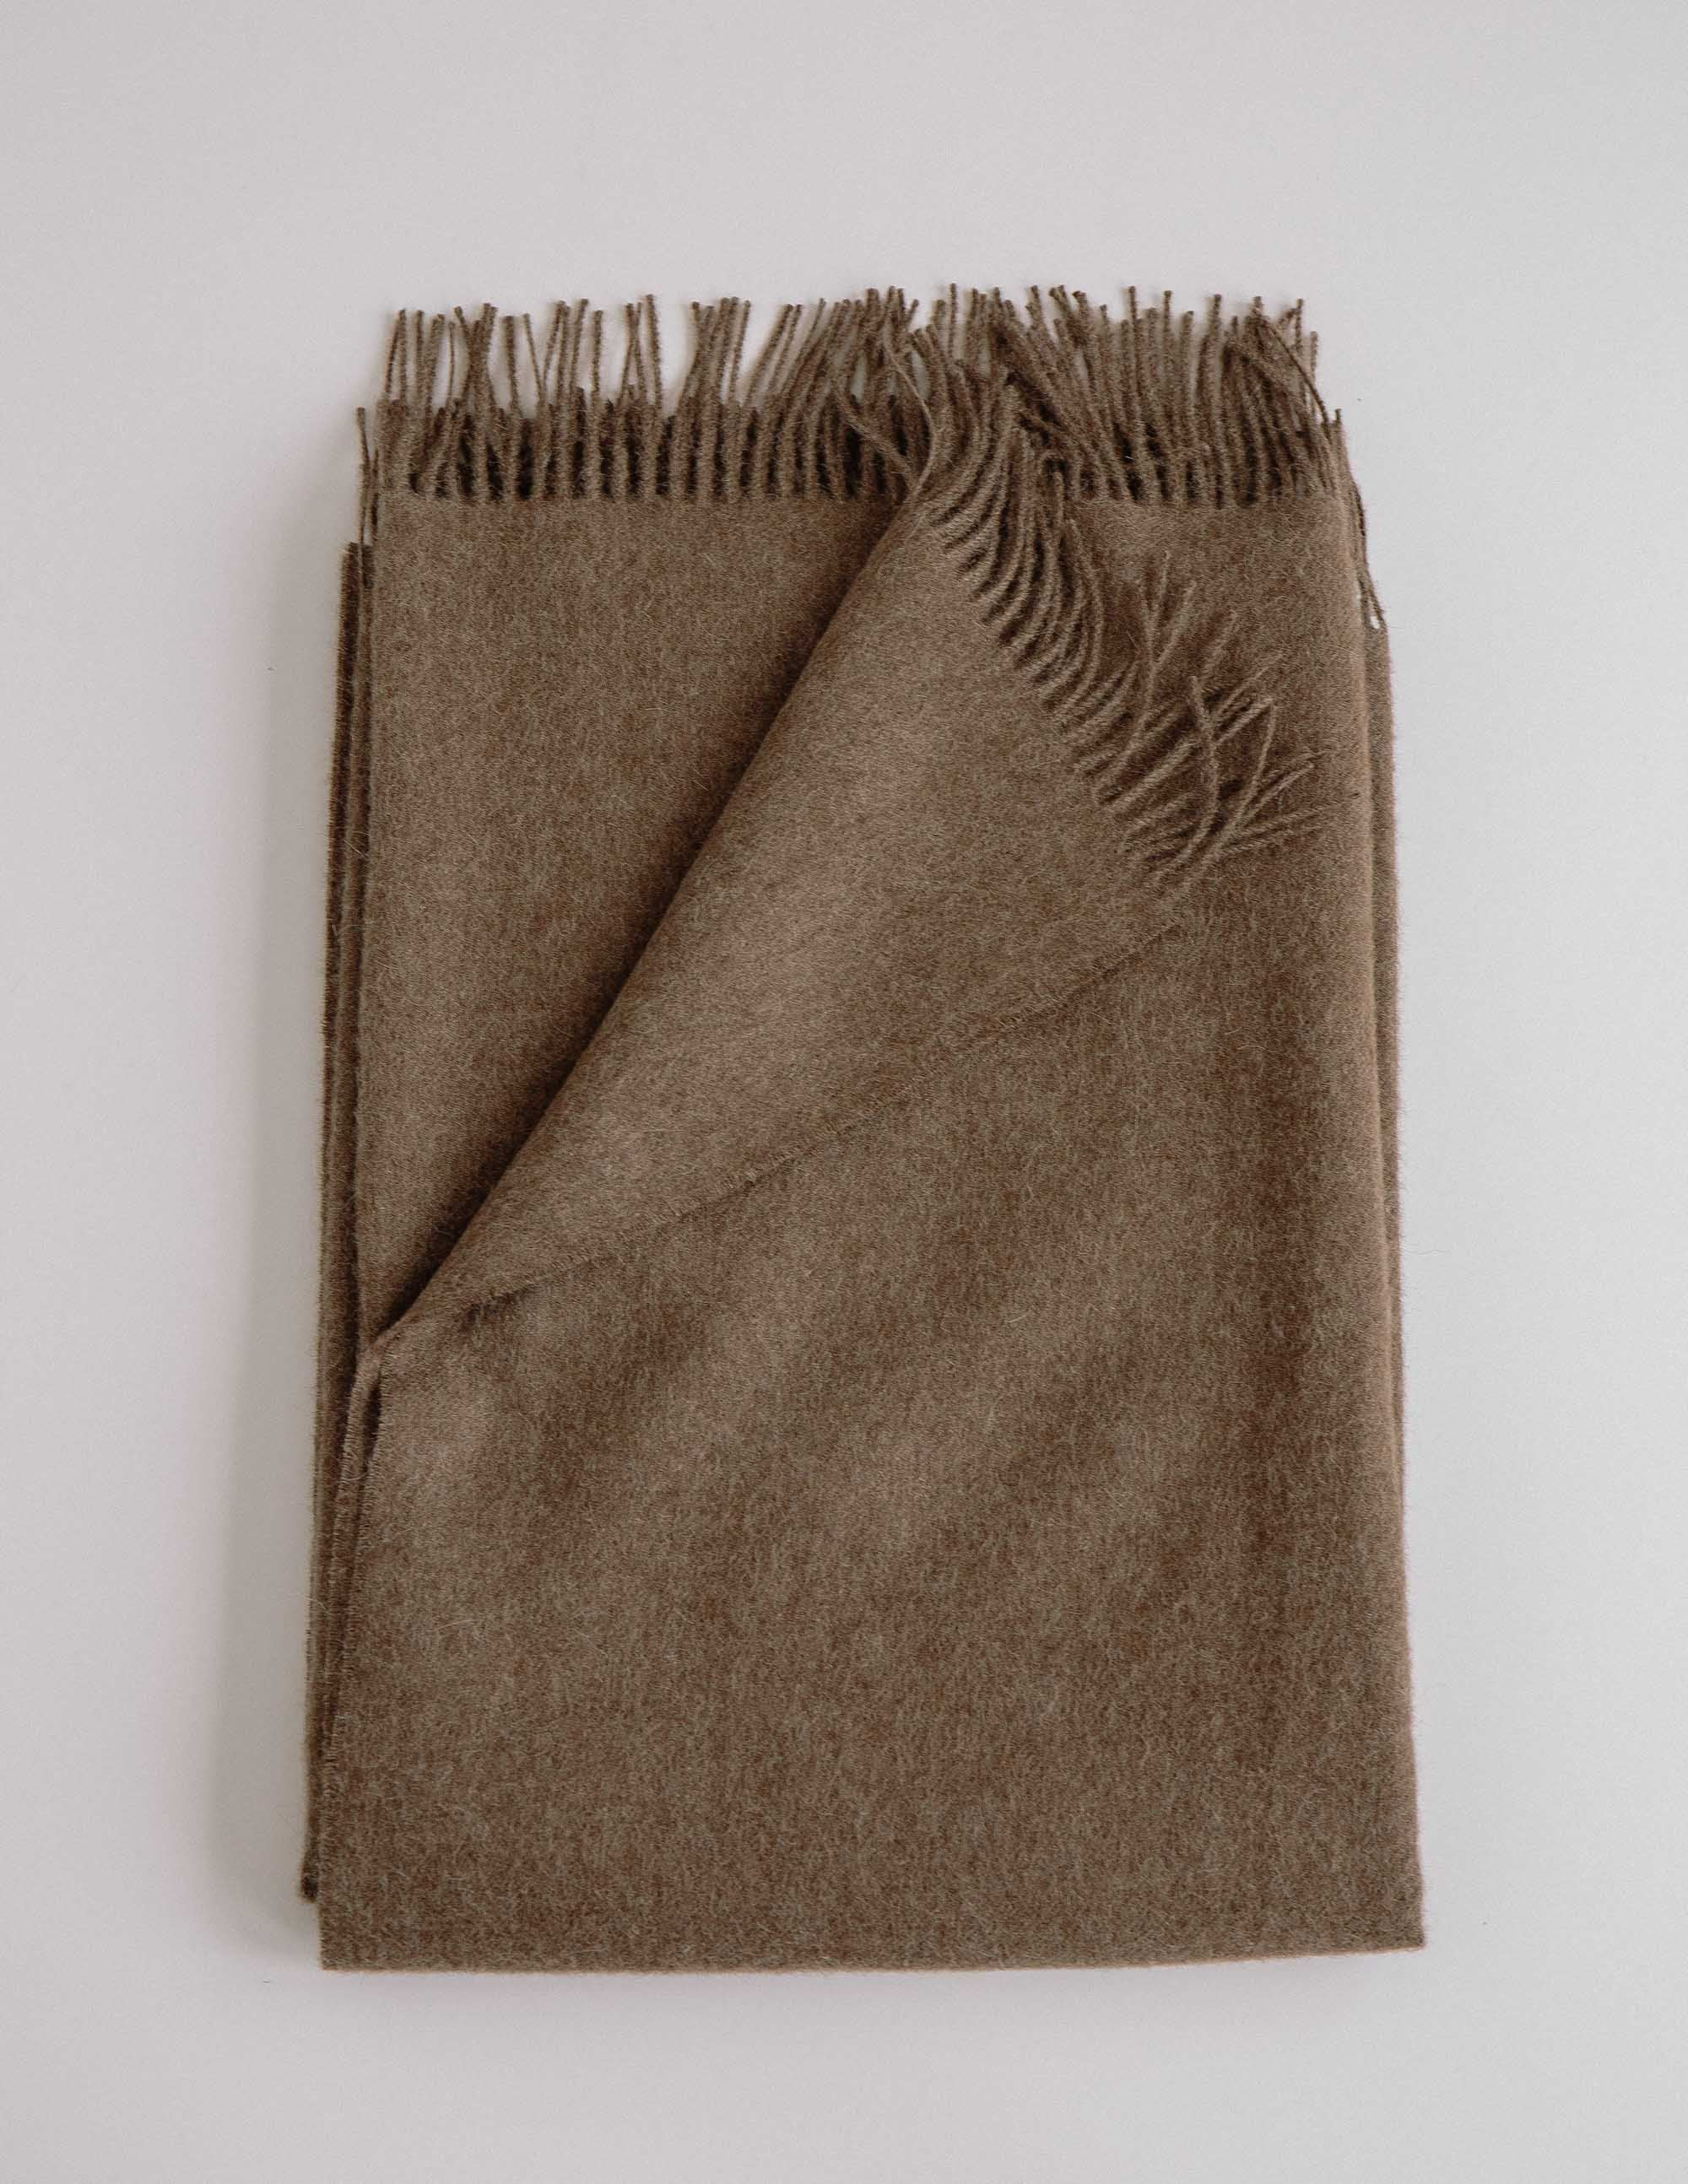 Soft brown alpaca throw blanket